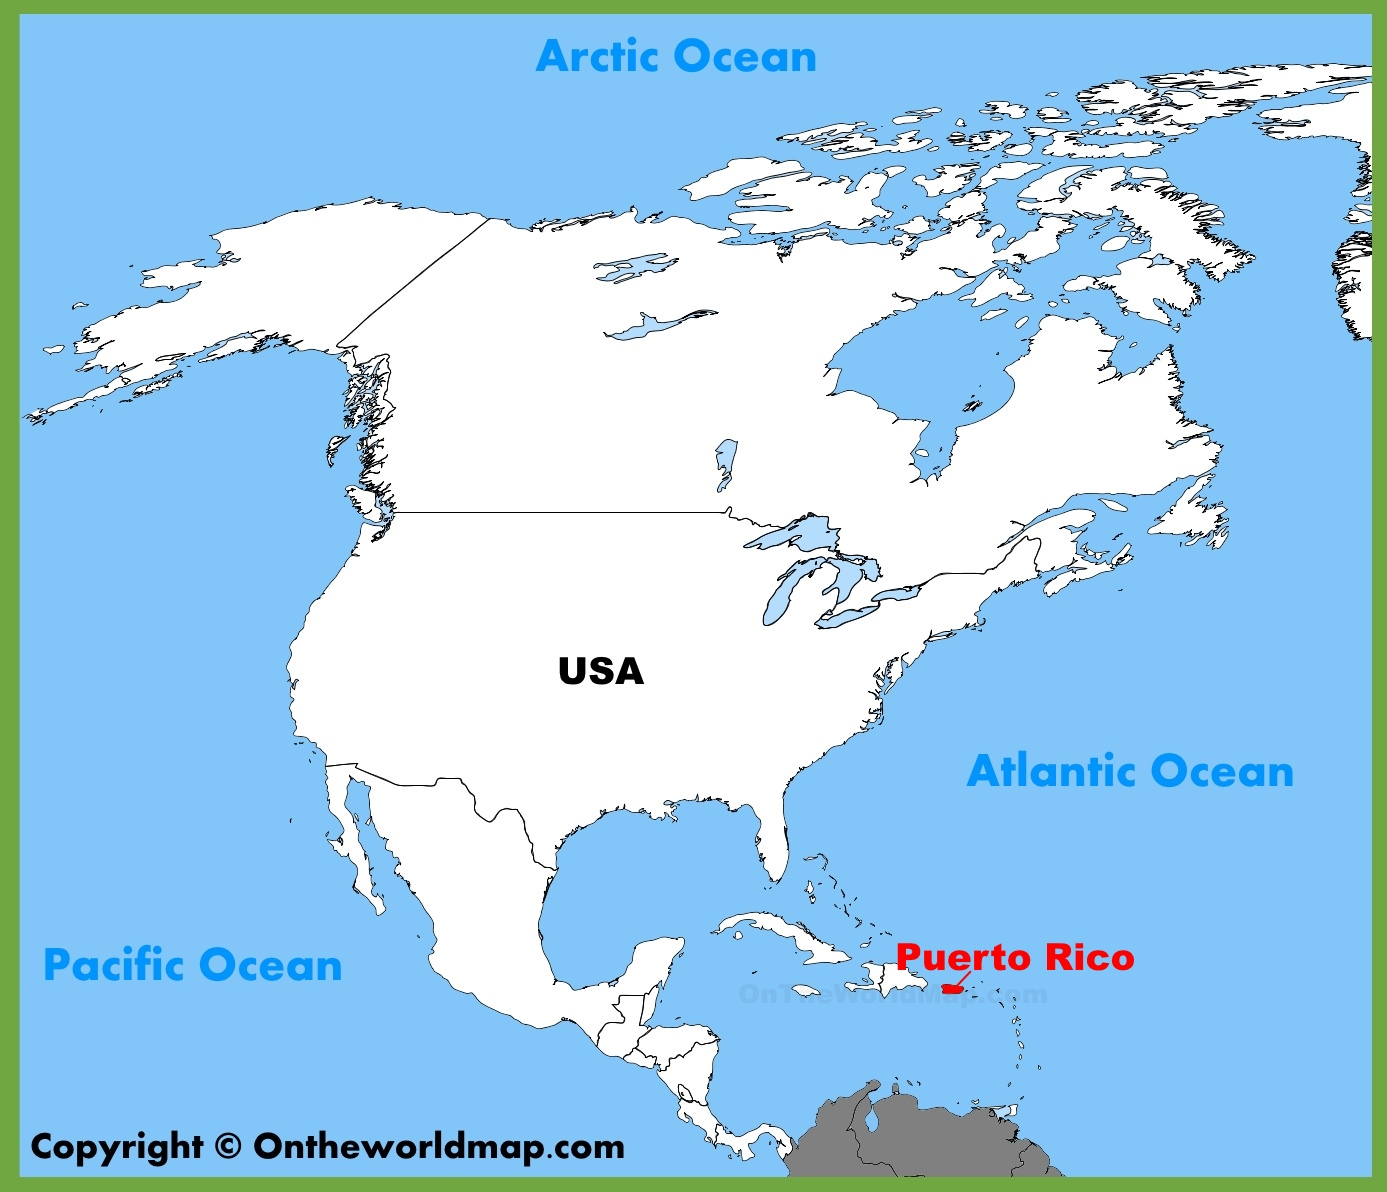 Where Is Puerto Rico On A Map Puerto Rico location on the North America map